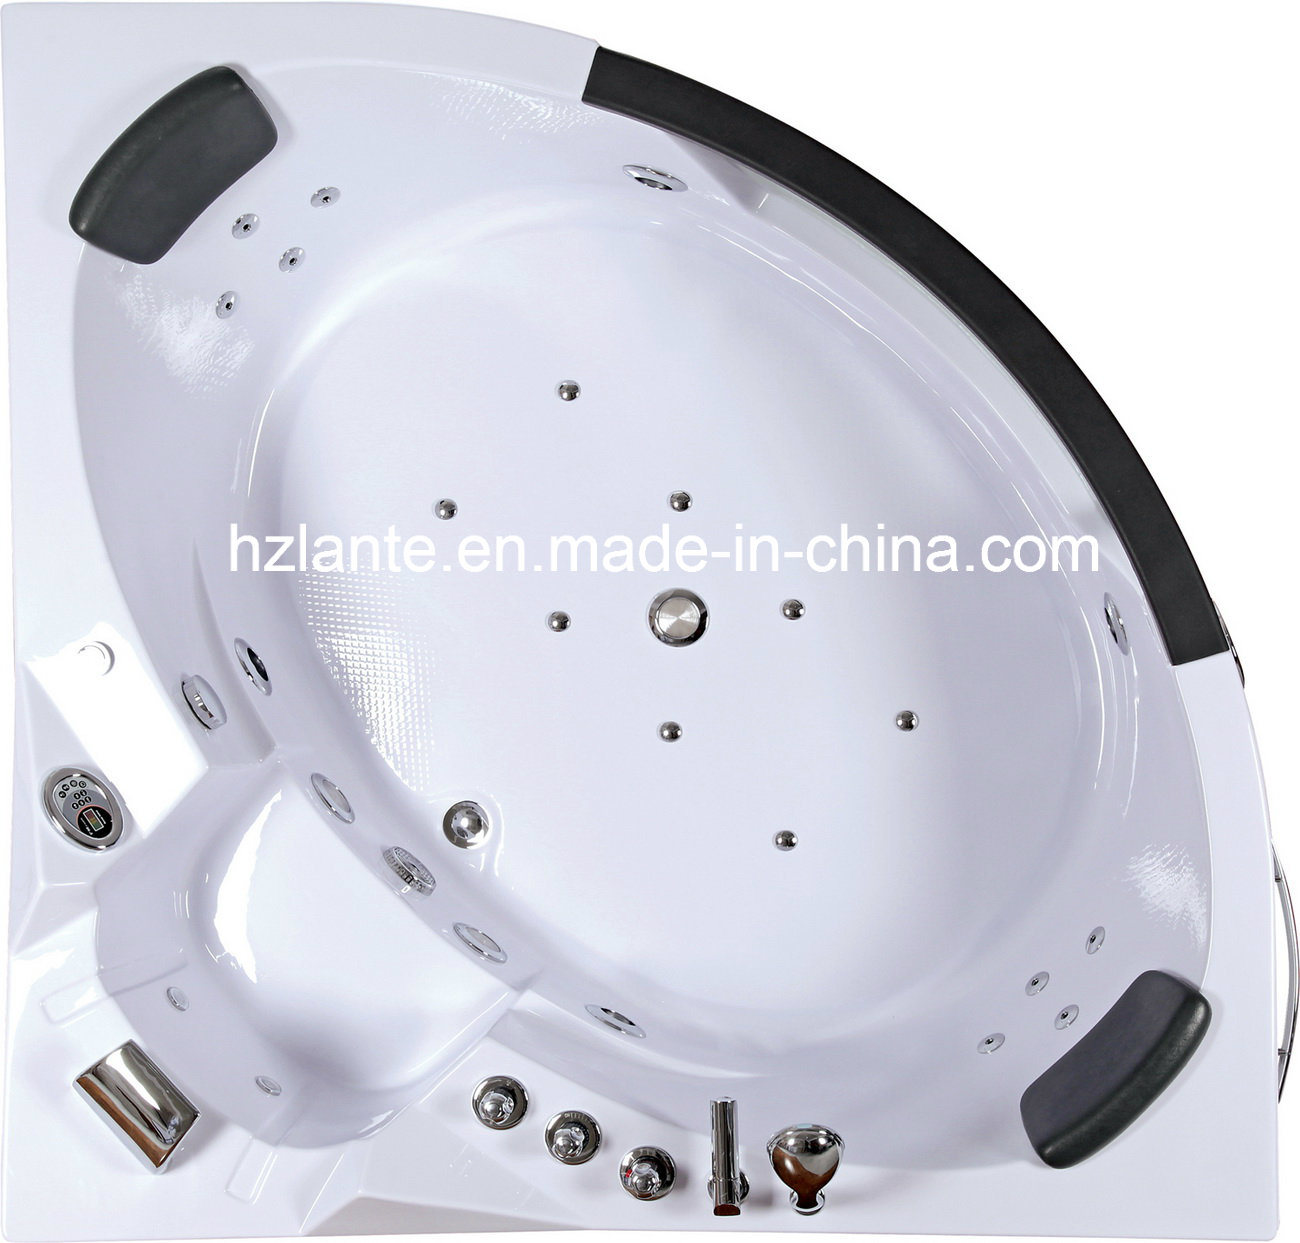 TUV CE Approved Luxury Whirlpool Massage Bathtub (TLP-632)